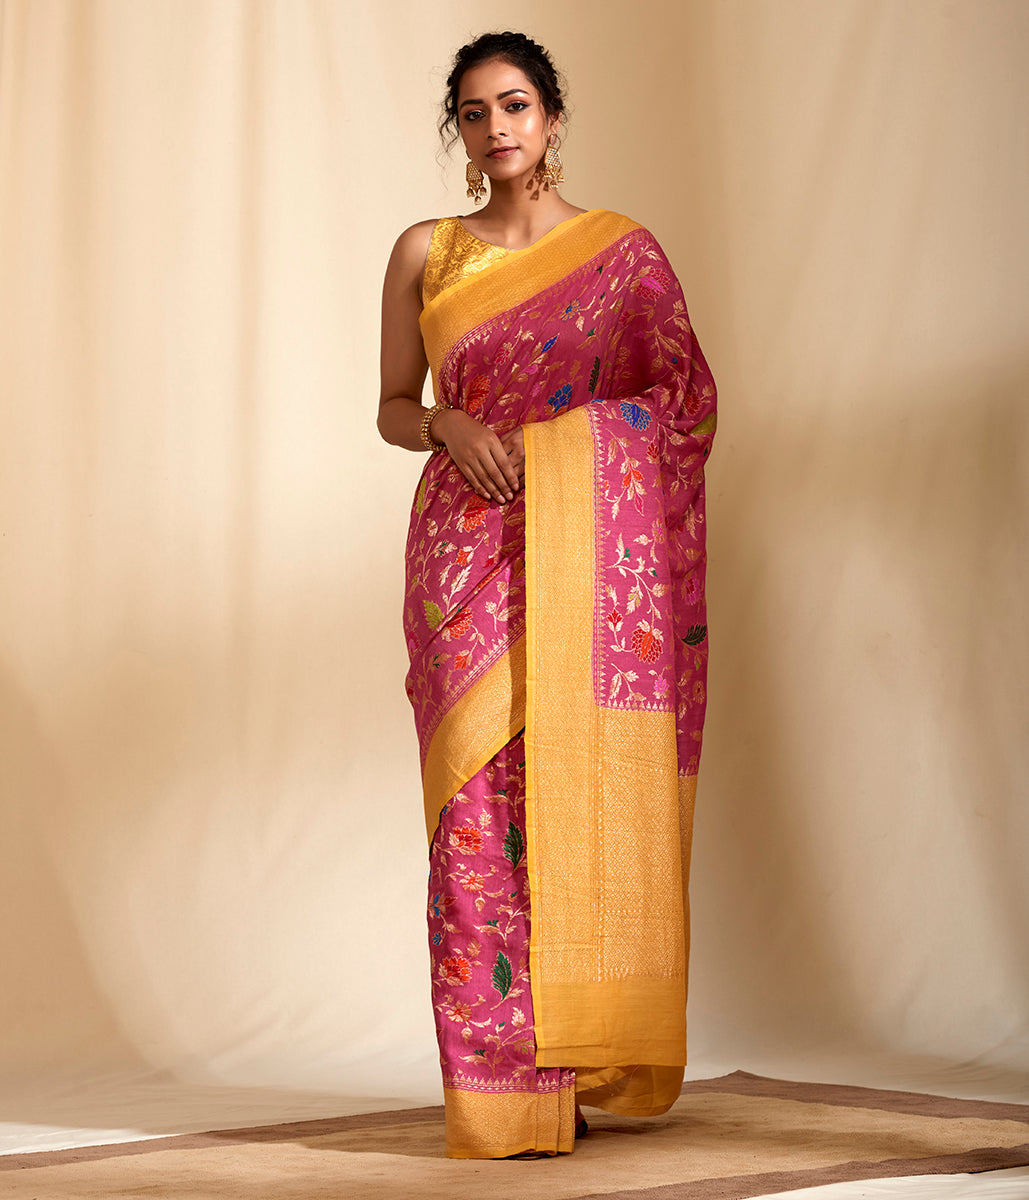 Handwoven Moonga silk saree with Meenakari jaal